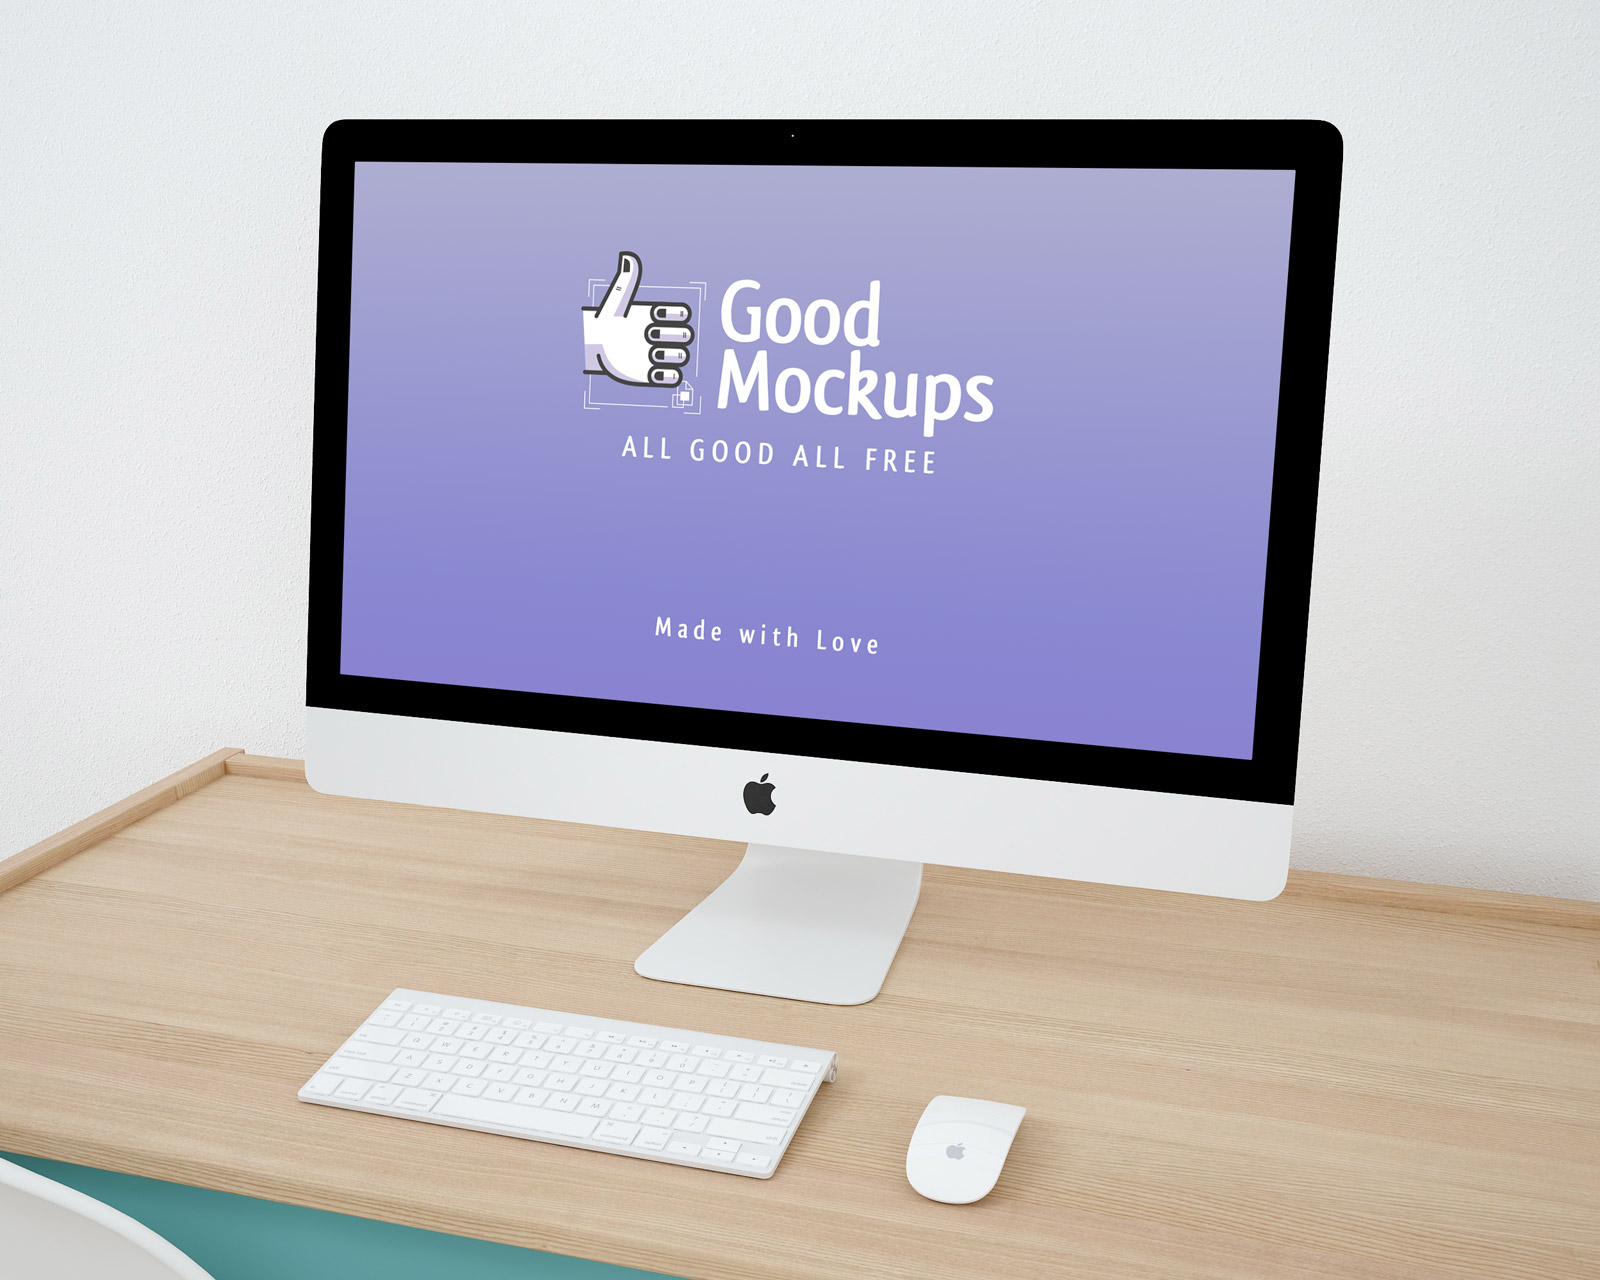 Free Apple iMac Website Template Mock-up PSD - Good Mockups